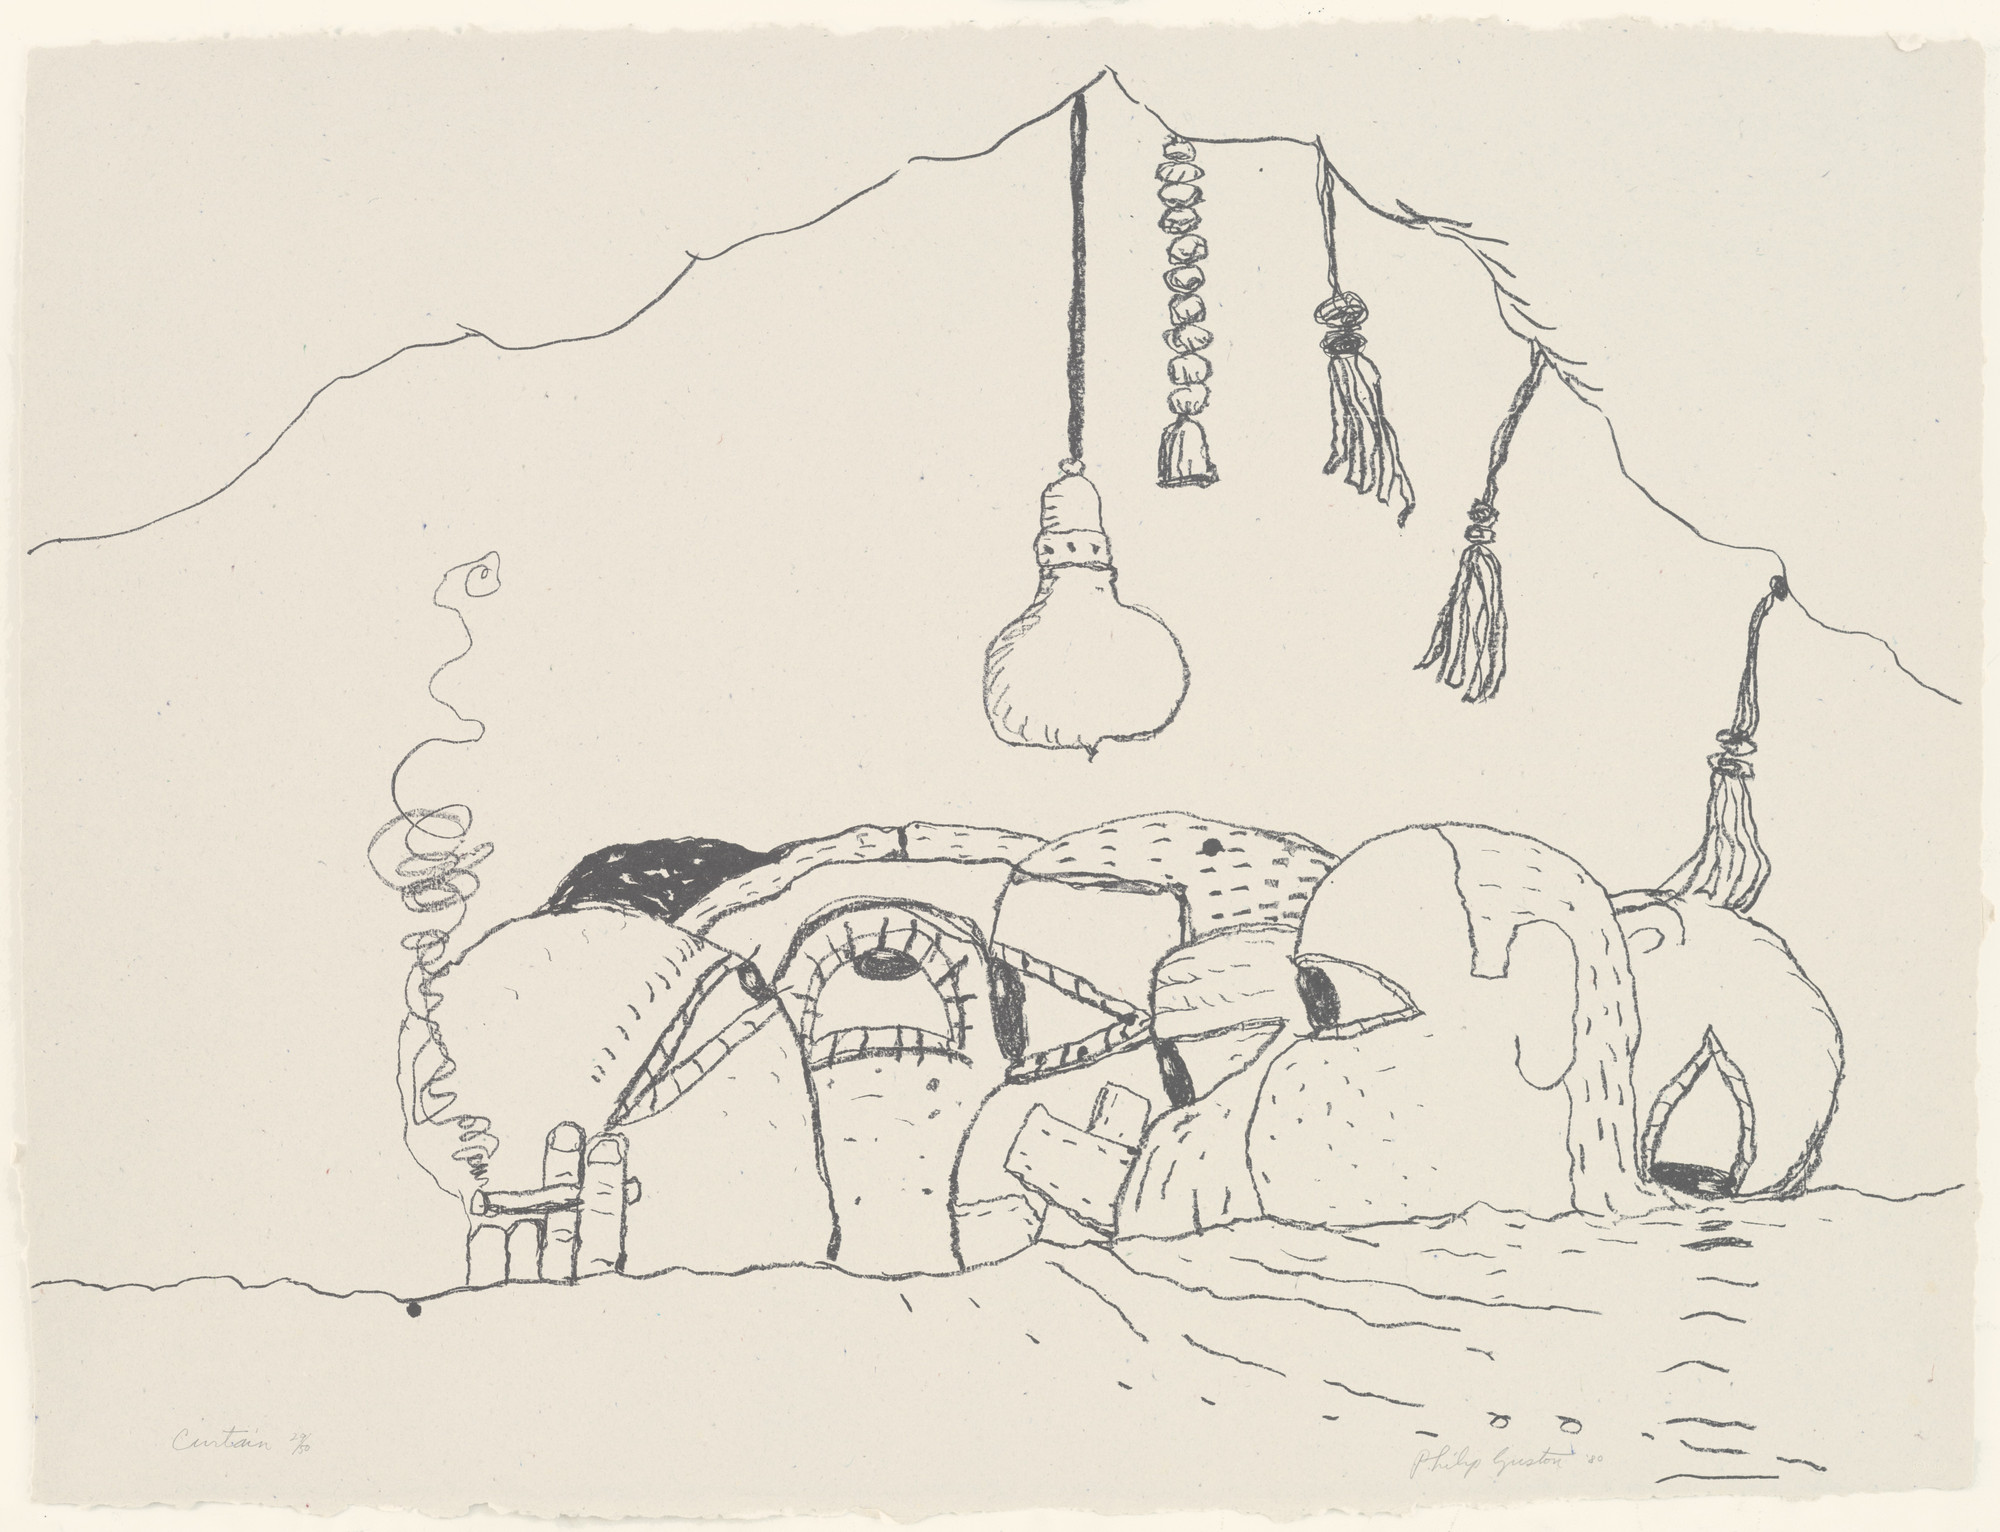 Philip Guston. Curtain. 1980, published 1981